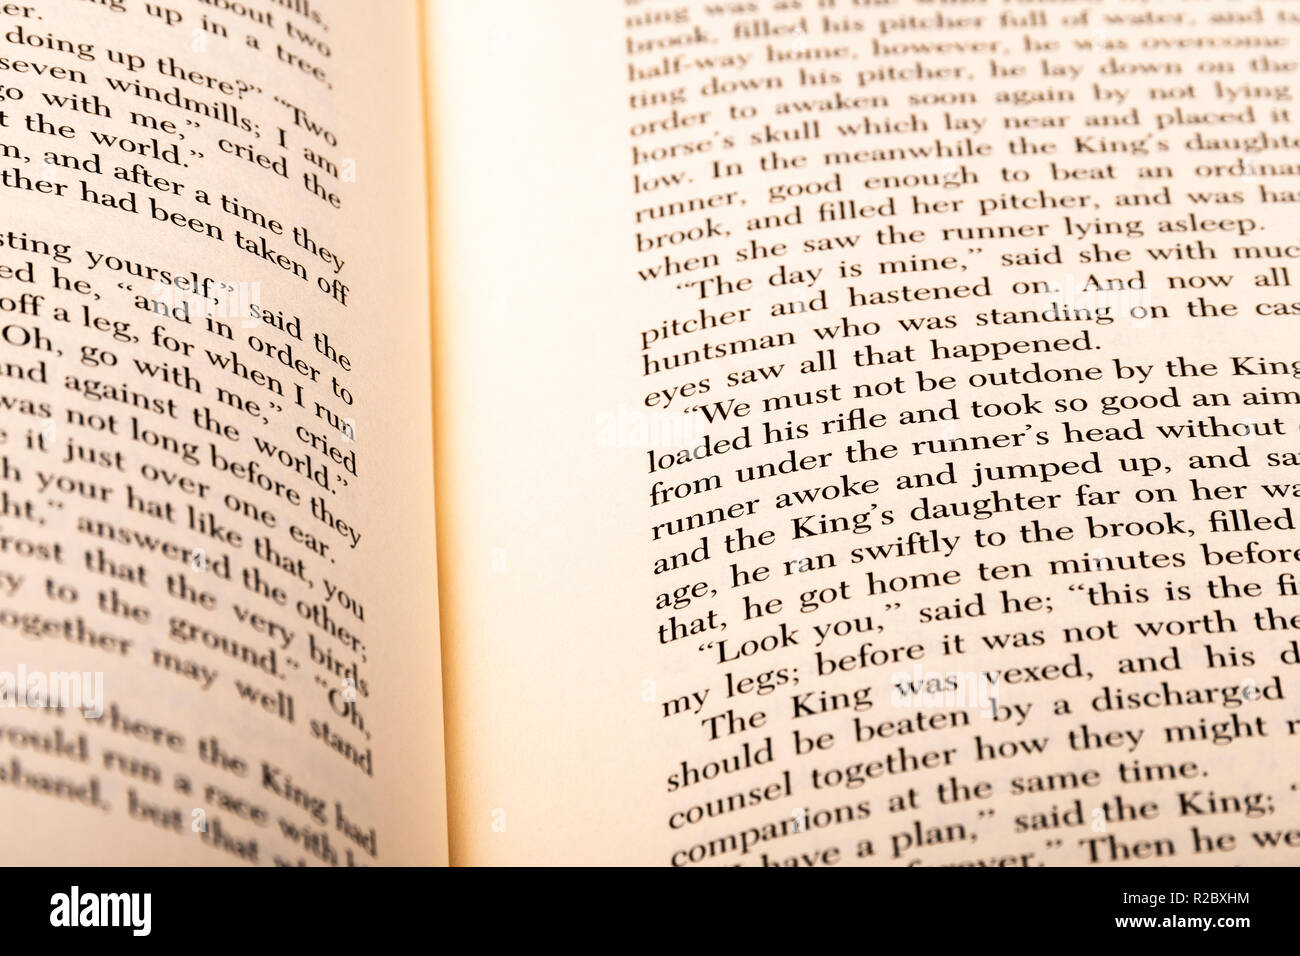 A book with English words lies open, showing portions of two pages with shallow focus and depth of field. - Stock Image